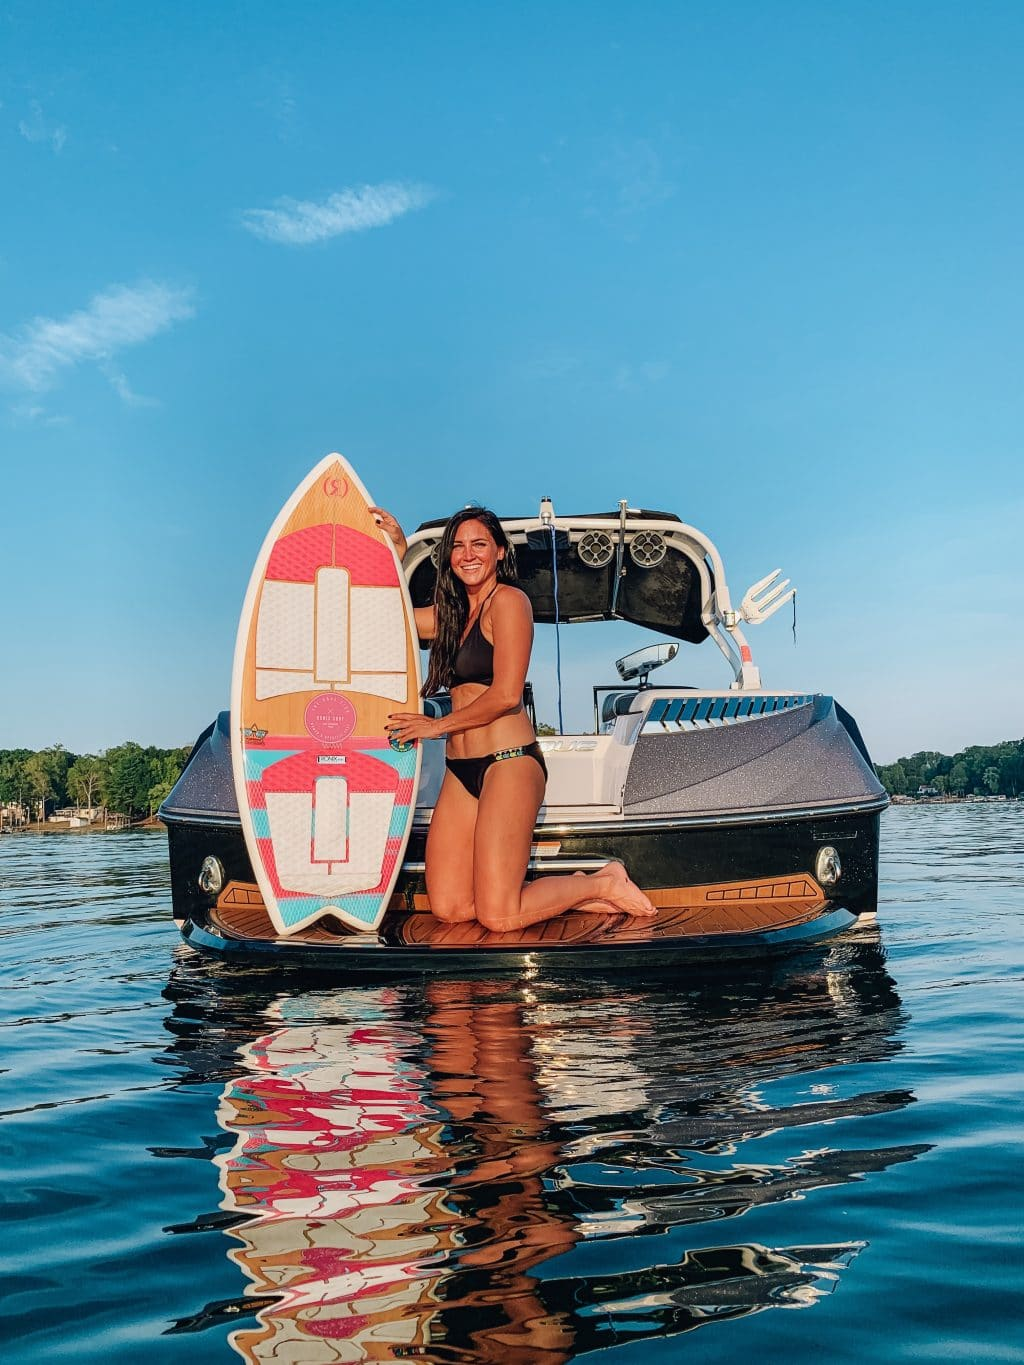 Race City Marine, Ronix Wake Surf board, Lake Norman, Molly Wey